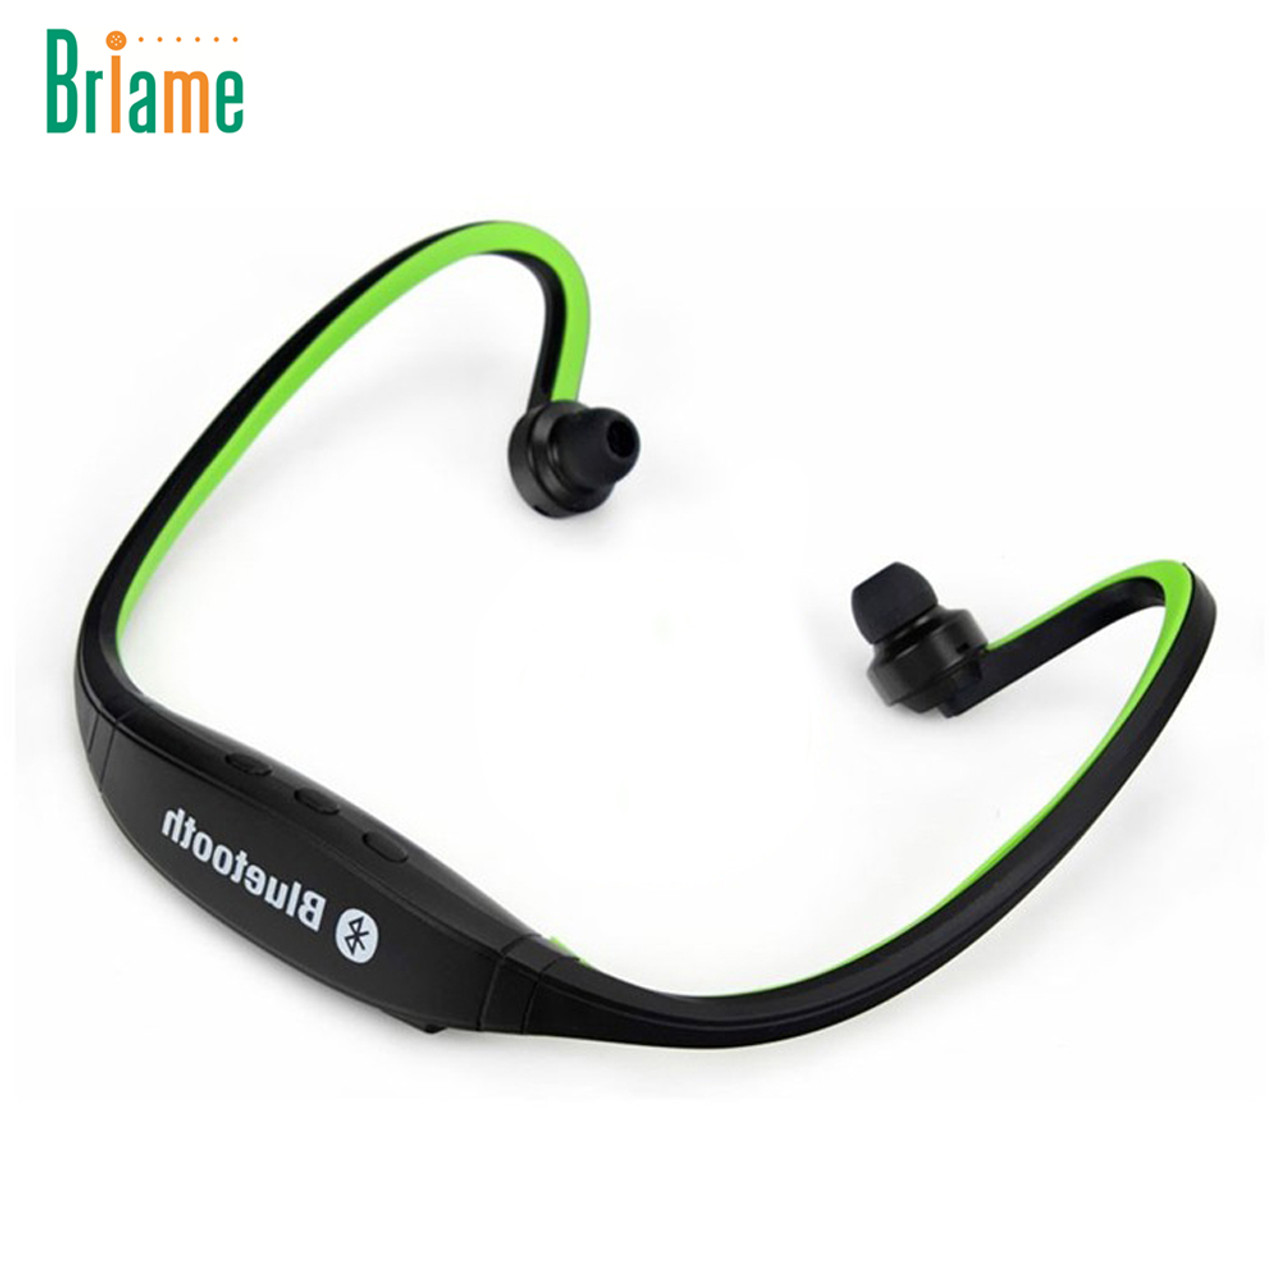 793bd2eb68d ... Briame S9 Sport Wireless Bluetooth Headset Handsfree Earphone Running  Stereo Bluetooth Headphone For iPhone Samsung Xiaomi ...